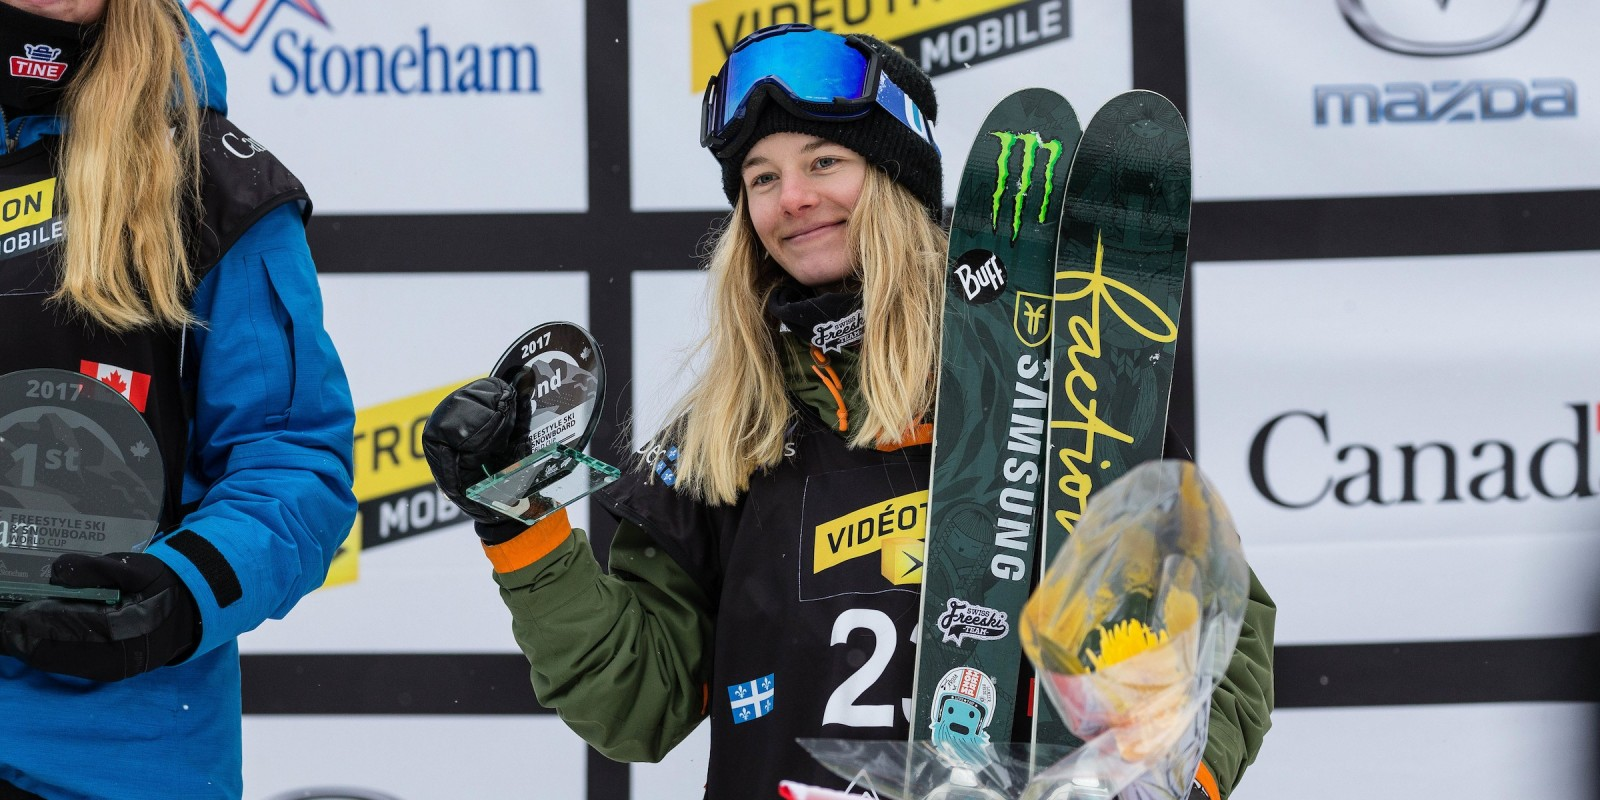 Action & podium shots from 2017 Snow Jamboree FIS World Cup in Quebec